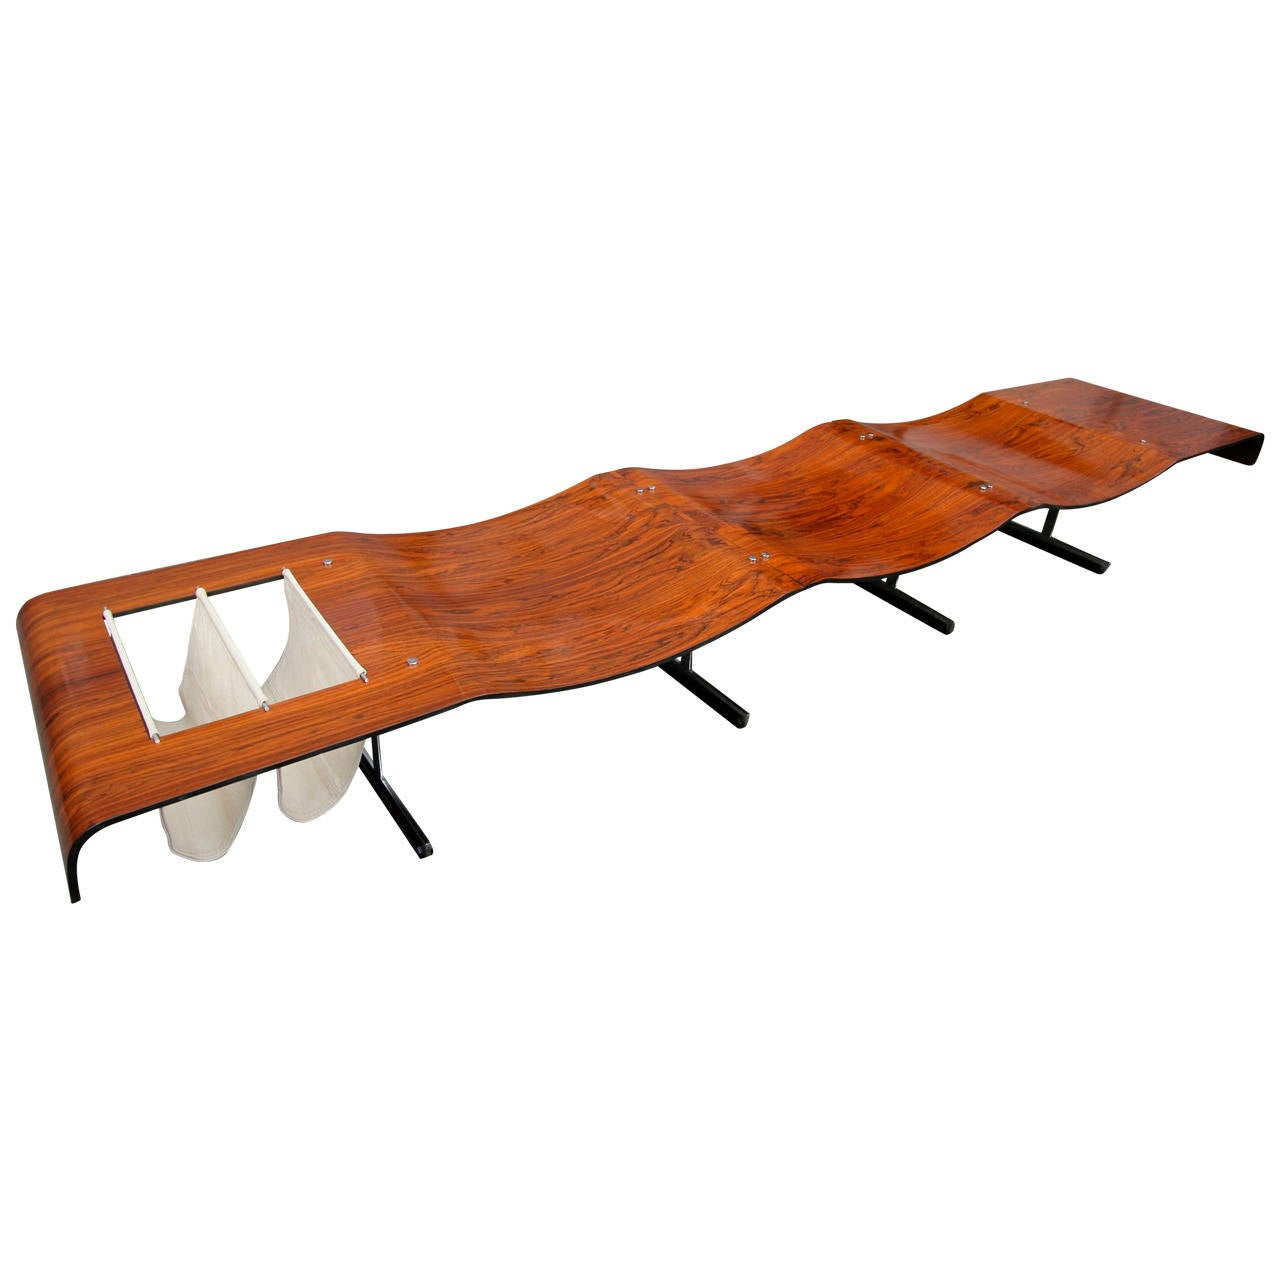 1960s Onda Bench by Jorge Zalszupin For Sale